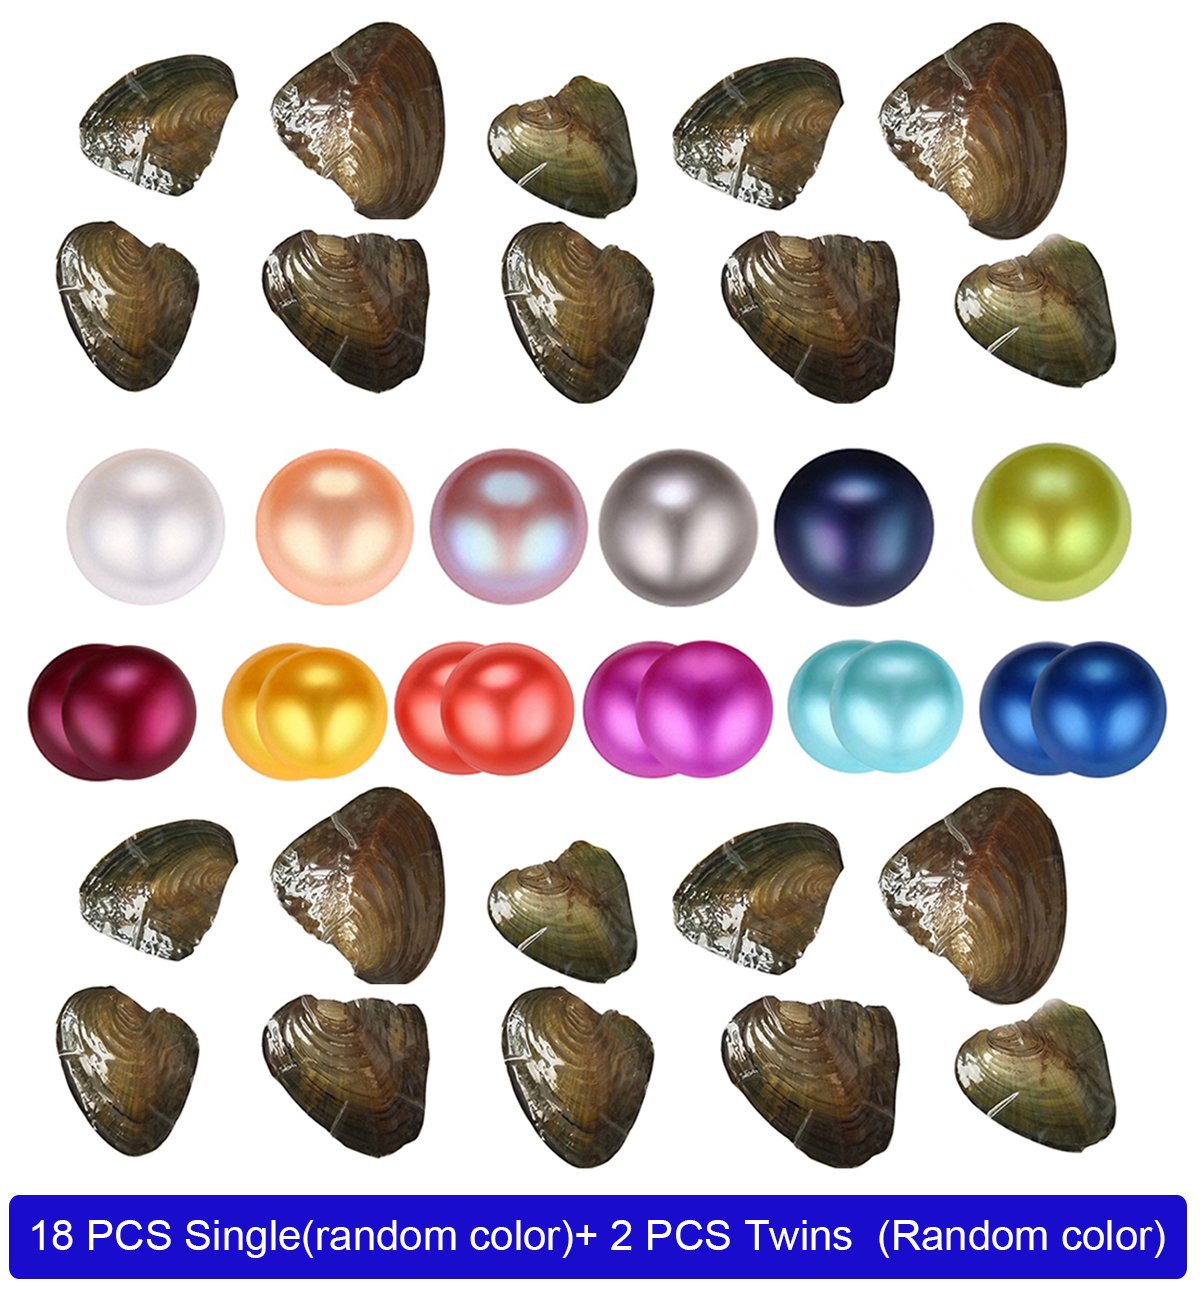 HENGSHENG 20 PCS 6.5-7 mm Freshwater Nearly Round Single and Twins Pearl Oysters Dyed Pearls Random Color